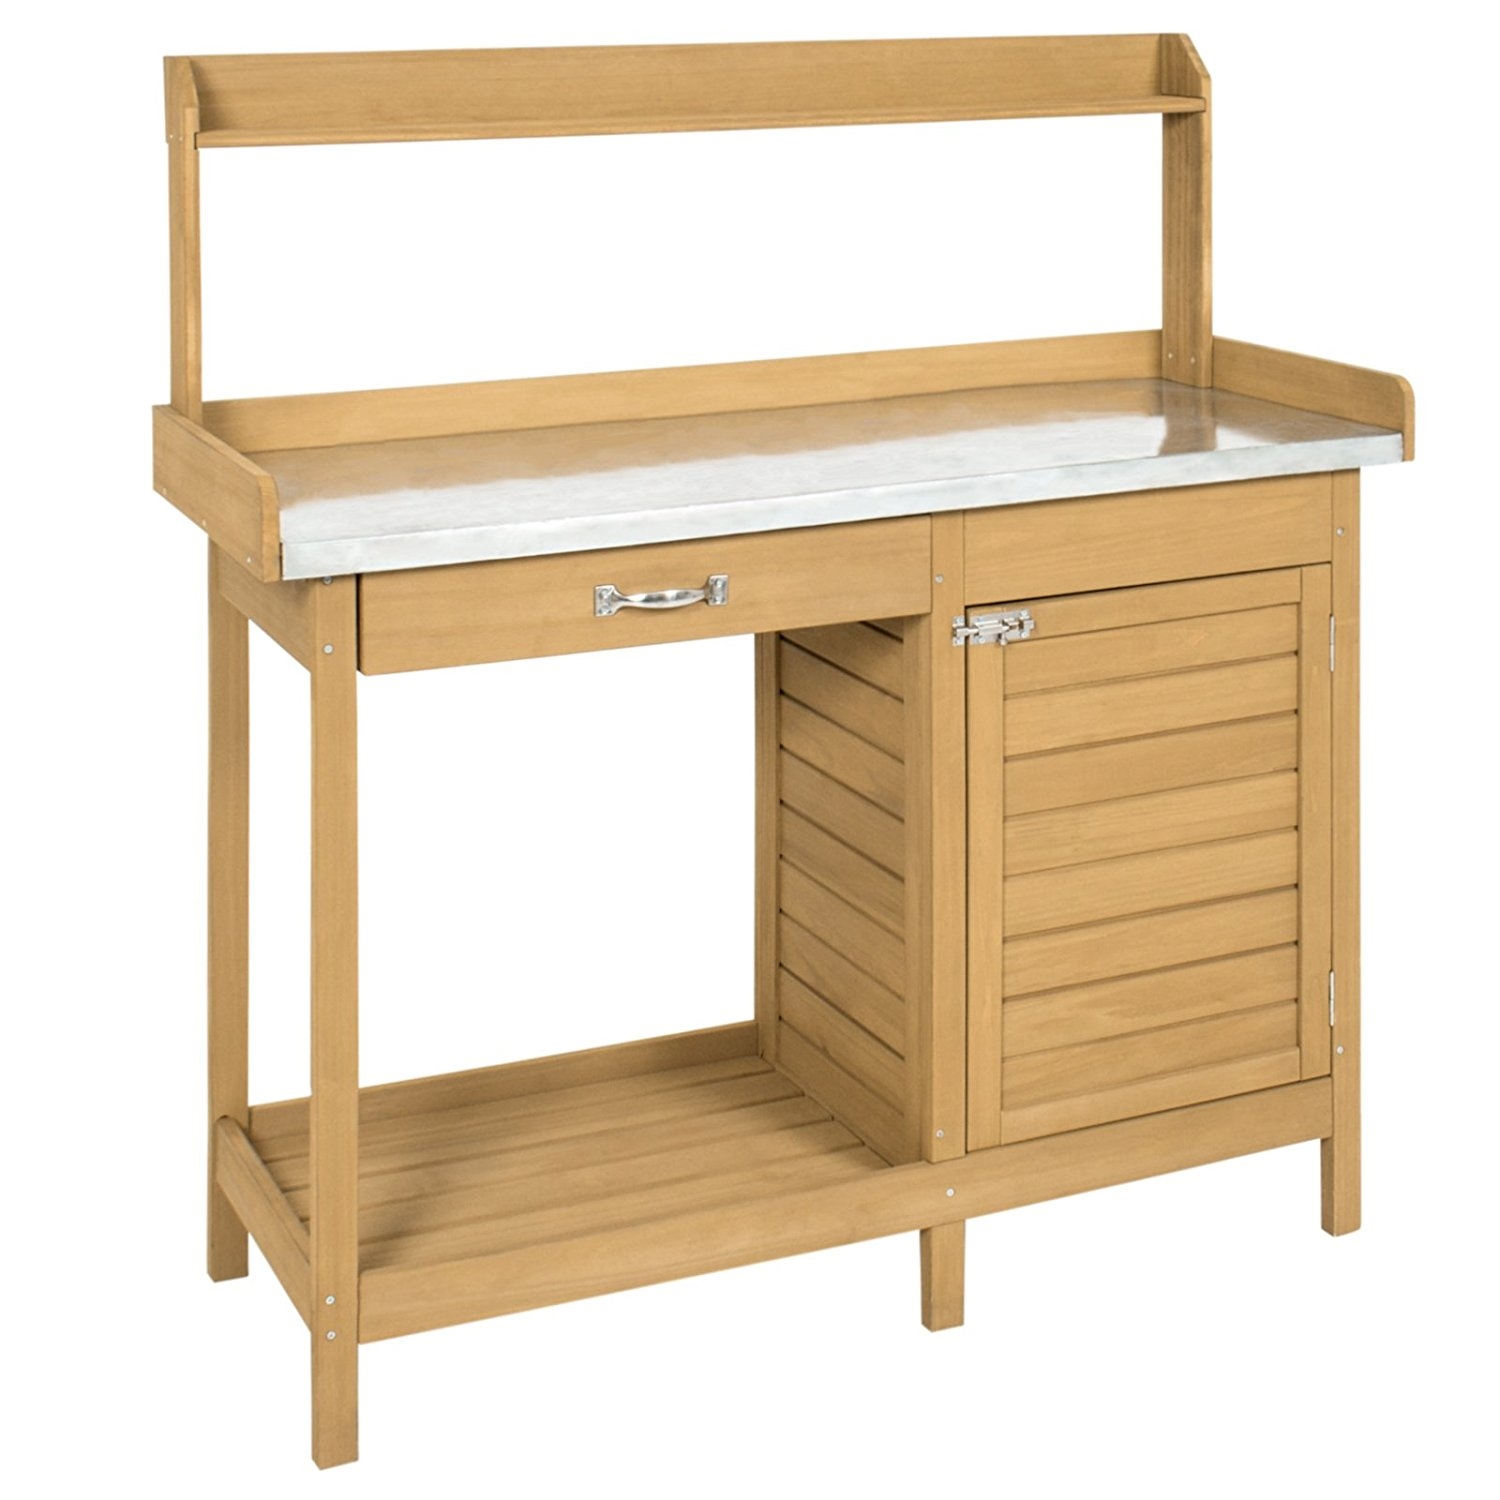 Natural Fir Wood Potting Bench Garden Work Table With Metal Top Fastfurnishings Com